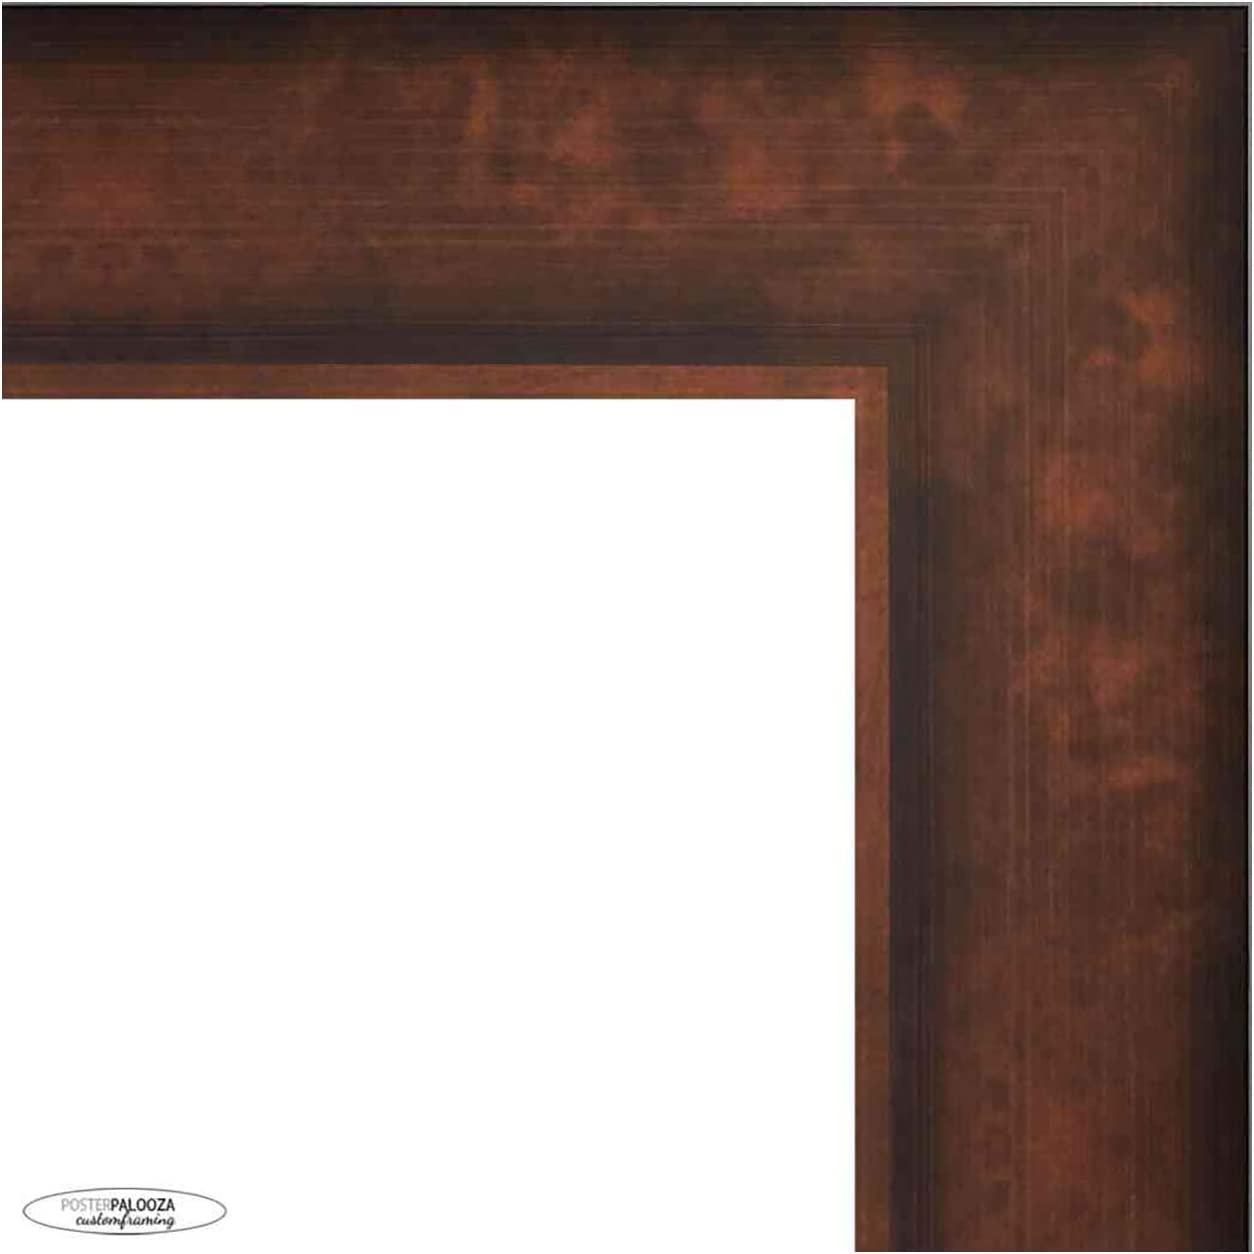 Outlet SALE Poster Palooza 36x24 Traditional Max 53% OFF Bronze Complete Wood Picture Fr